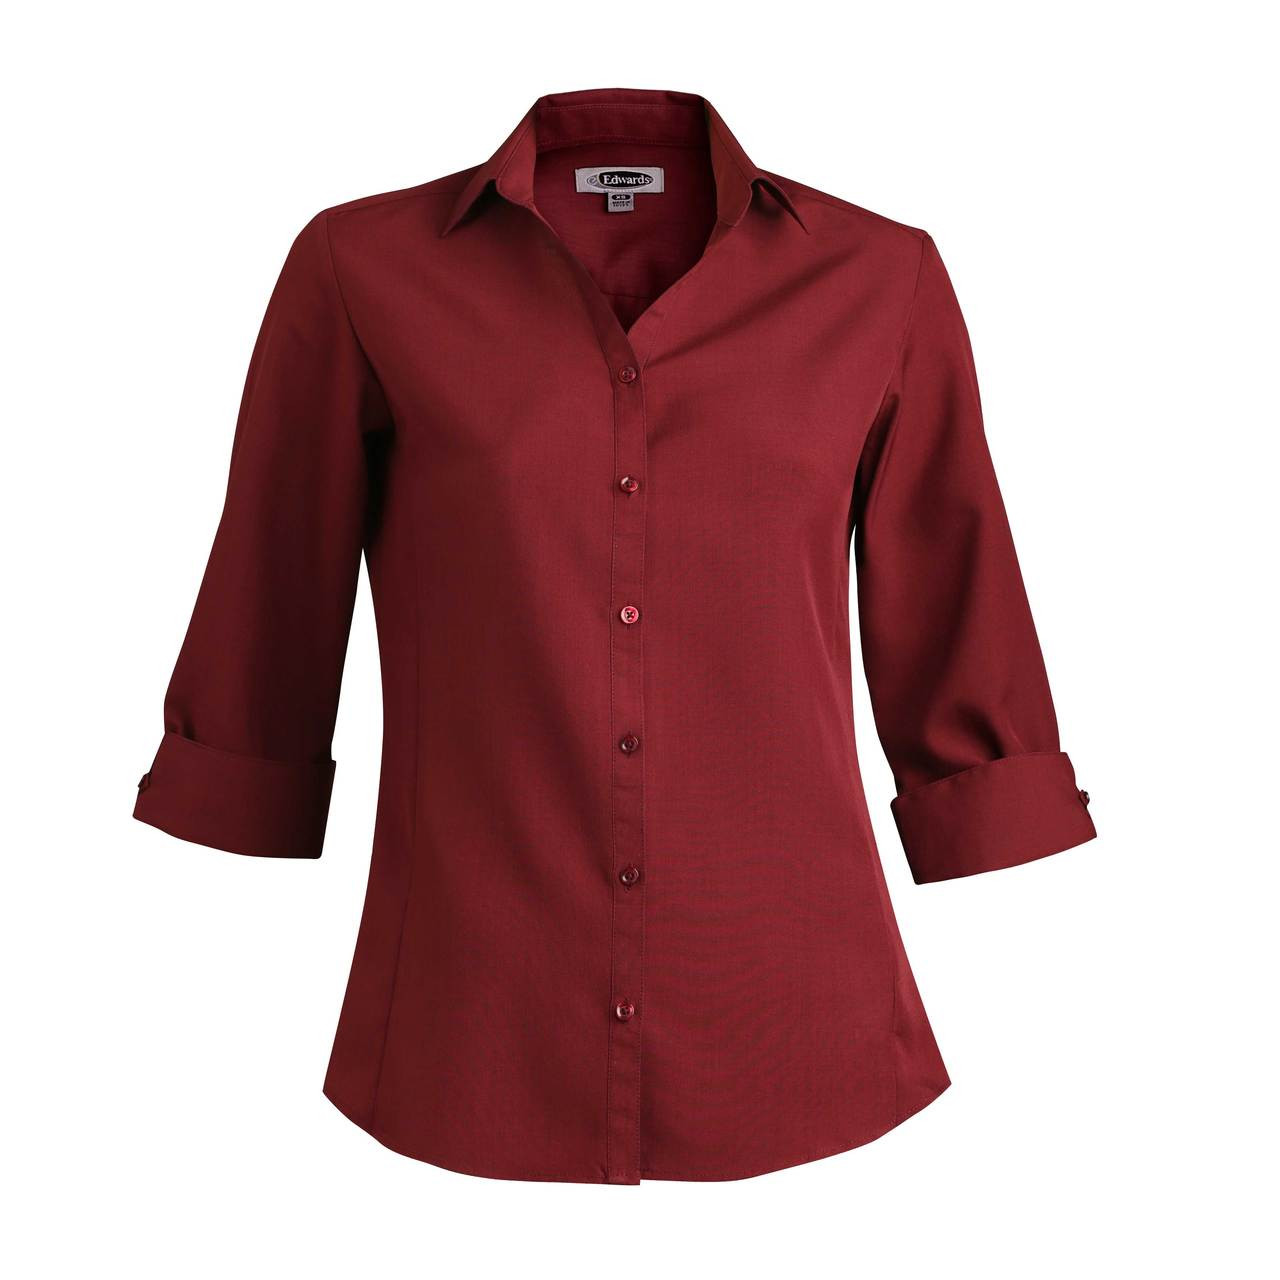 Batiste Ladies Blouse